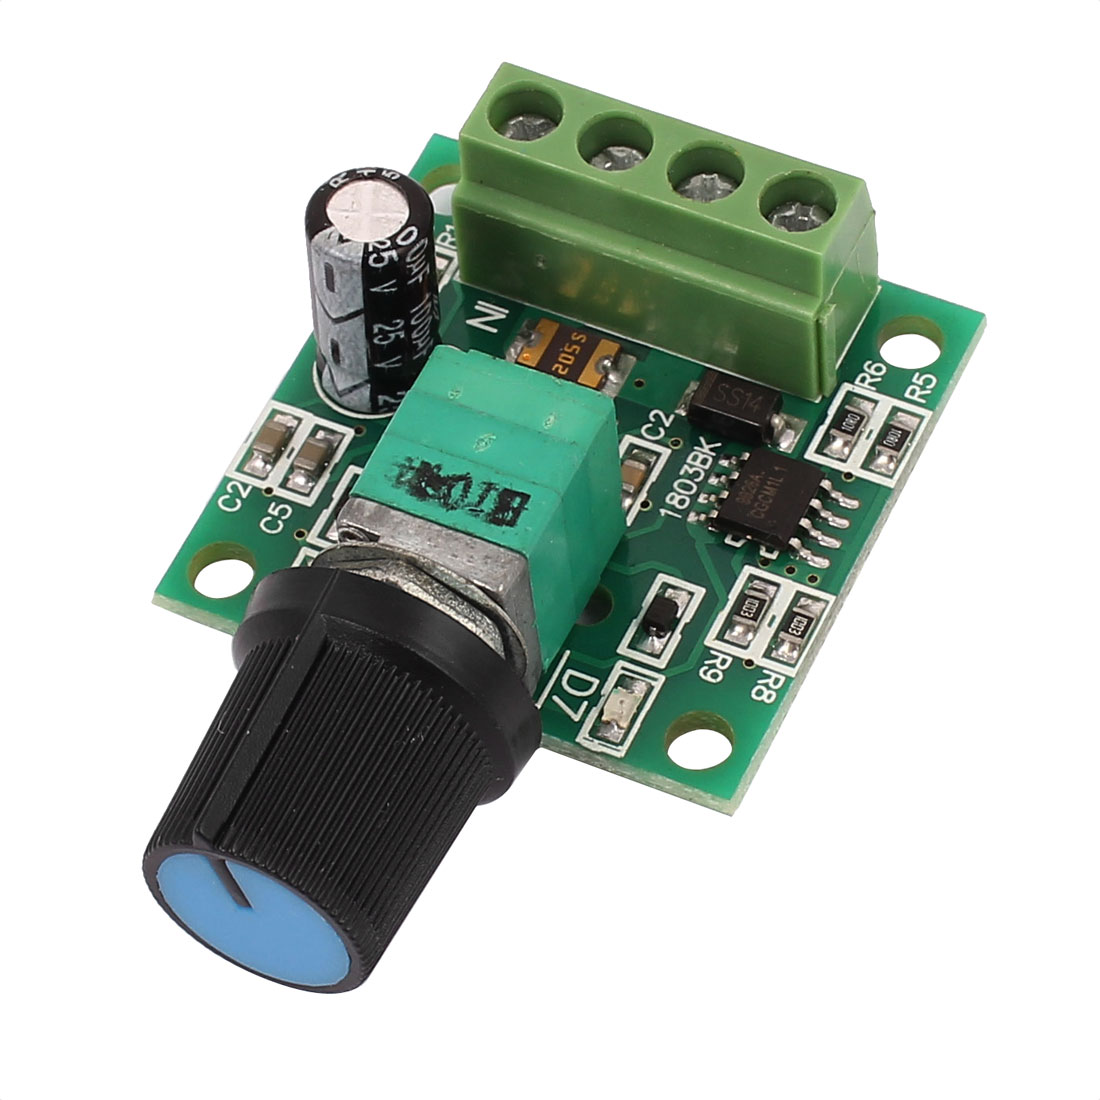 DC 1.8V 3V 5V 6V 12V 2A PWM Motor Speed Controller Regulator Adjustable Switch